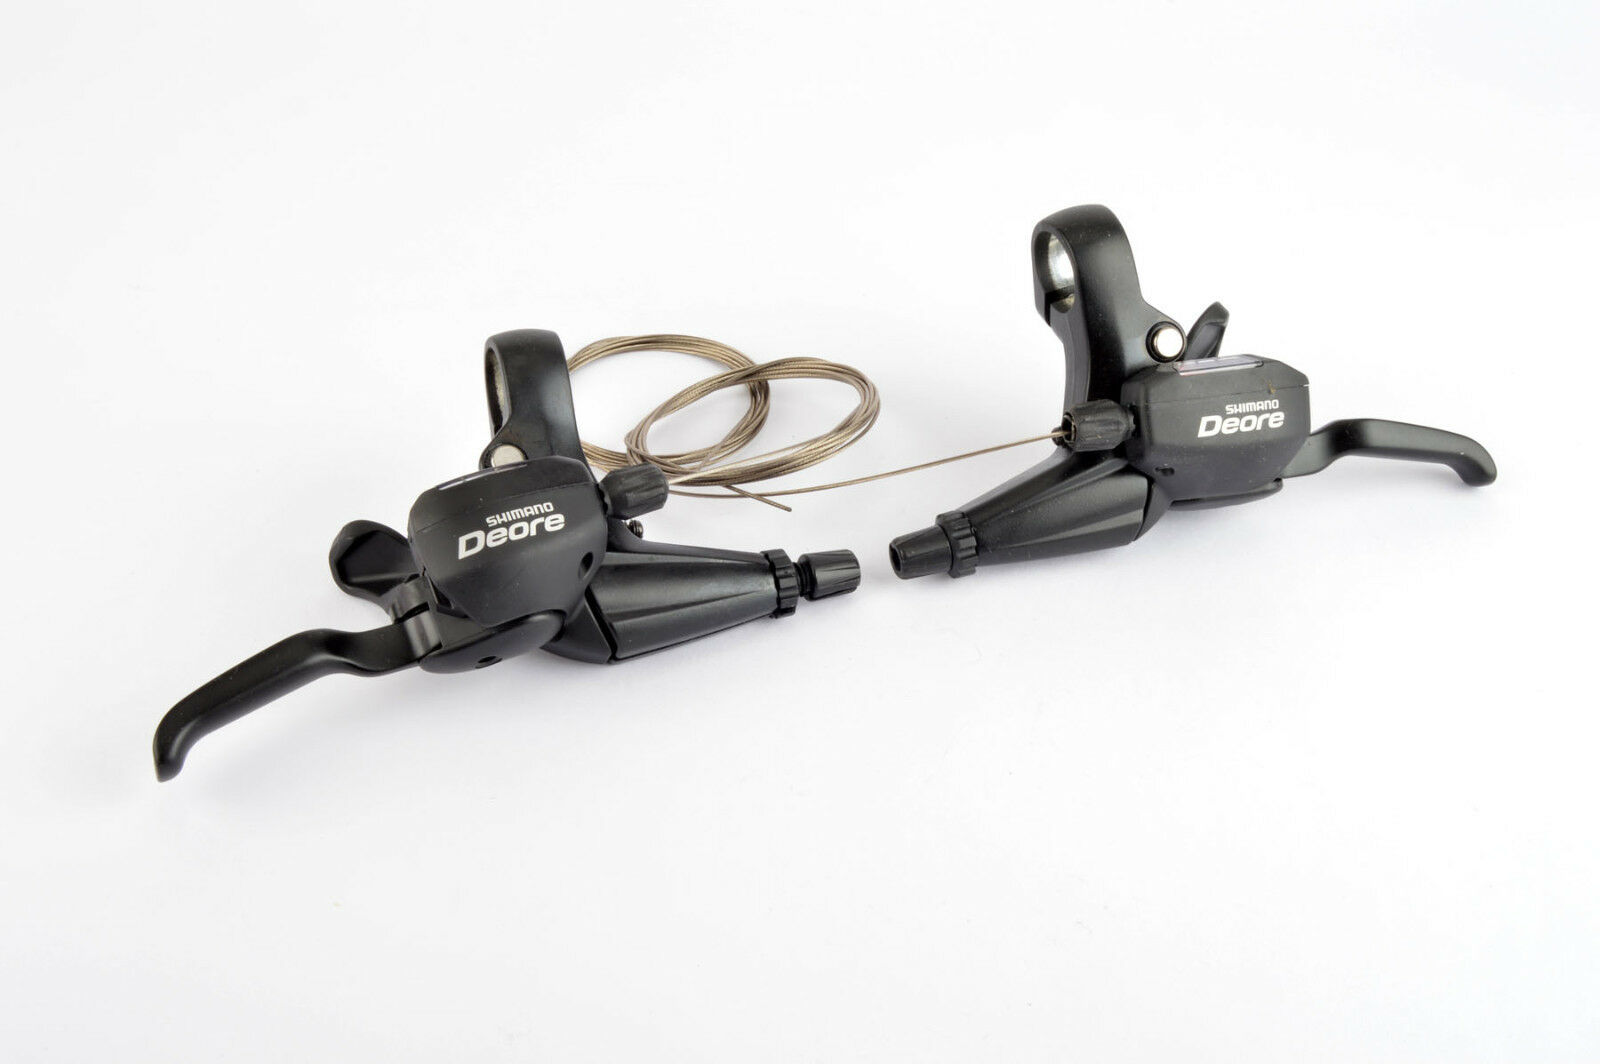 NEW Shimano Deore  st-m530  Brake Shifters 3x9 speed from the 1990s NOS  factory direct